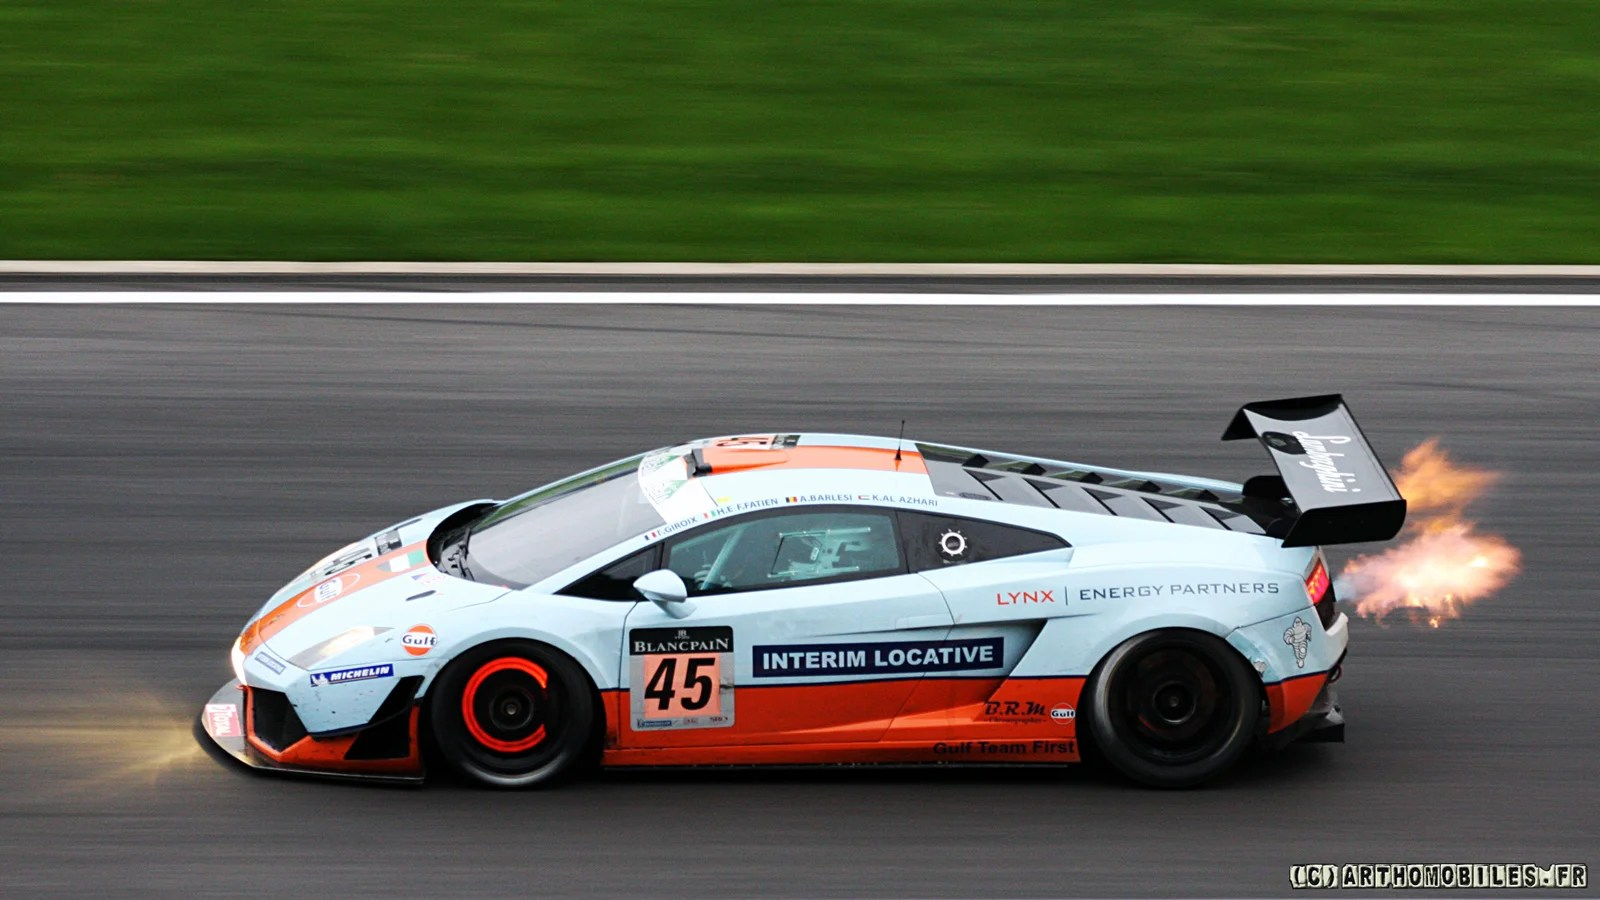 Car Racing Flag Wallpaper Your Ridiculously Cool Gulf Oil Lamborghini Wallpaper Is Here